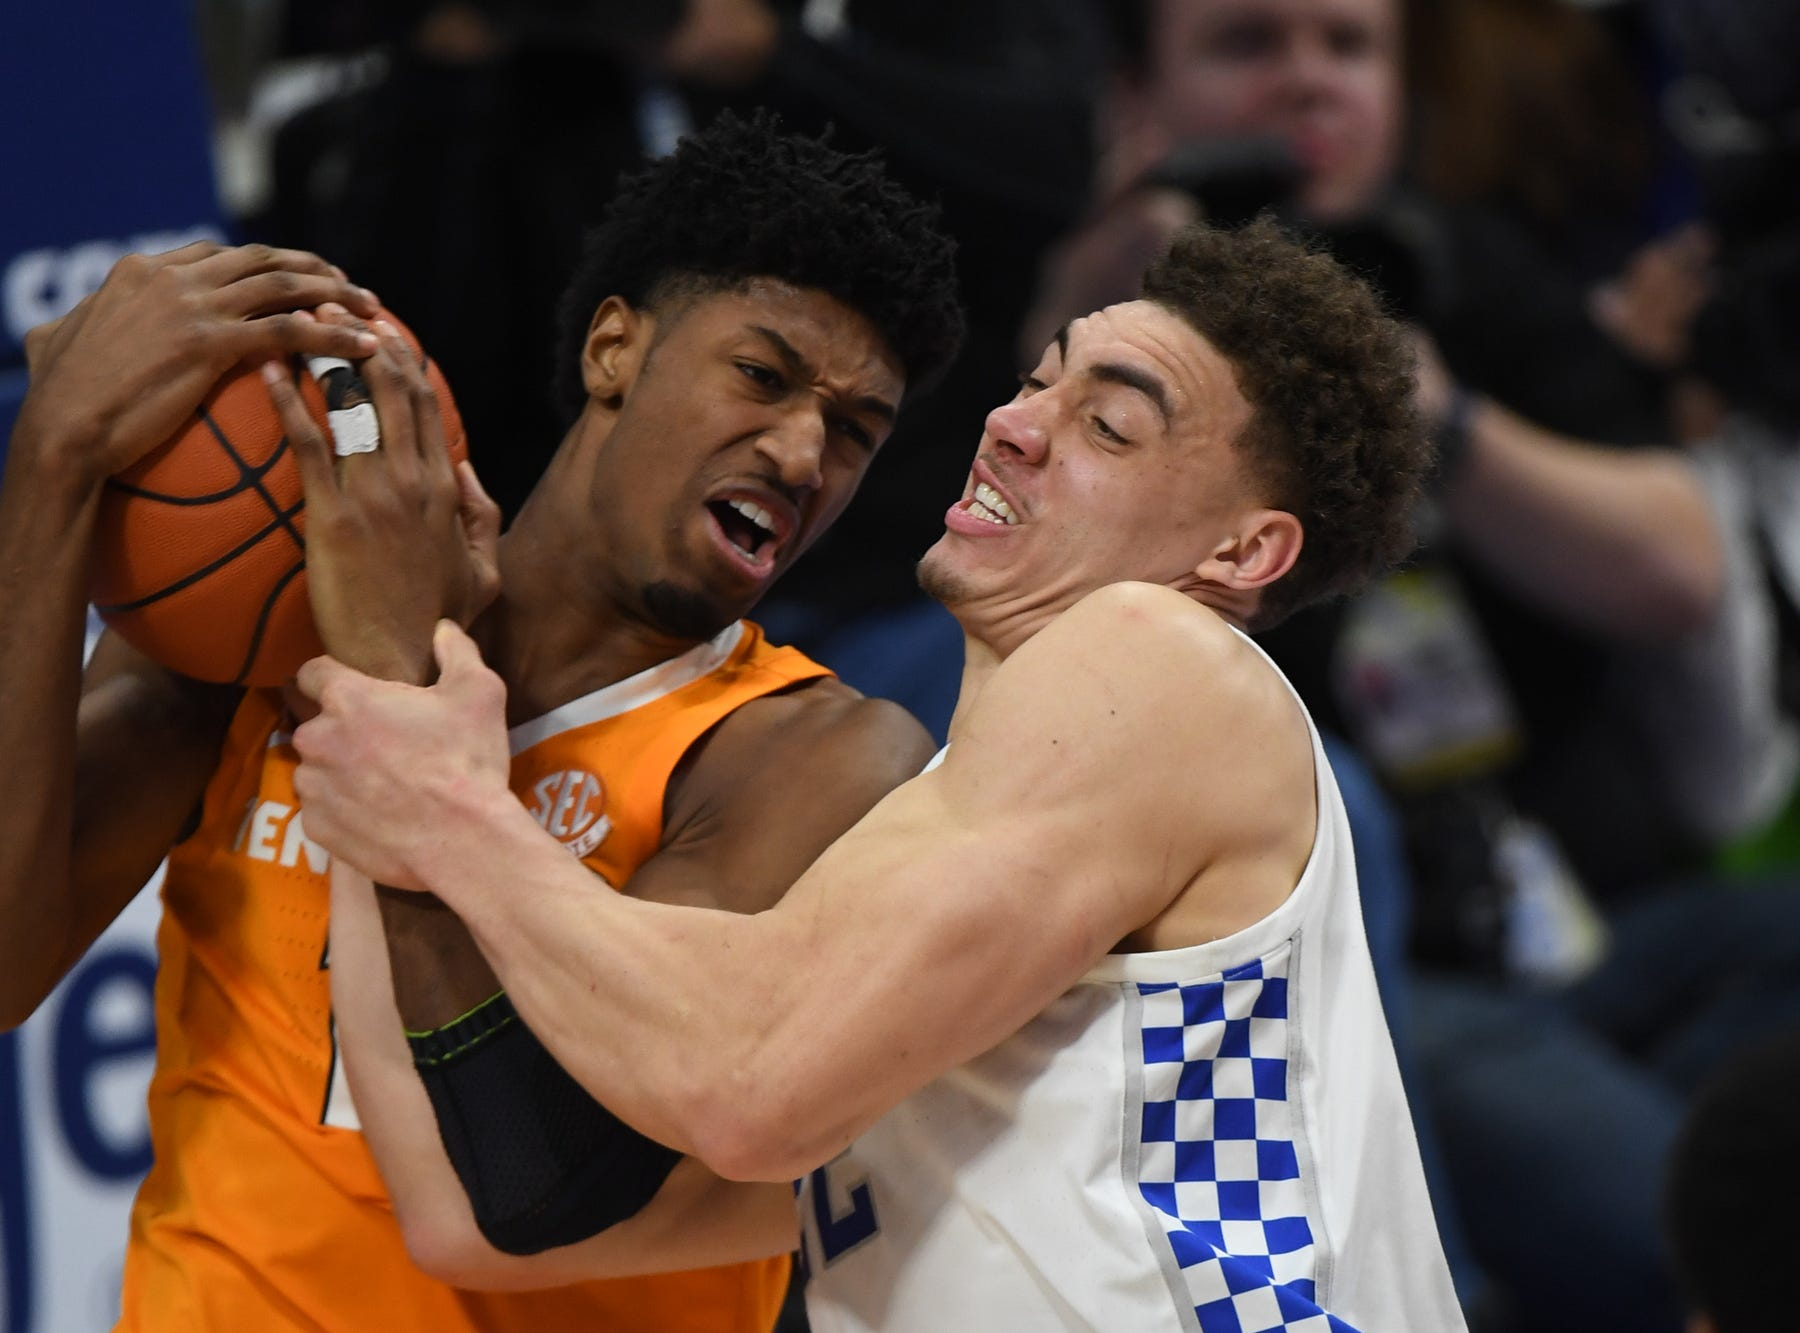 UK F Reid Travis secures a jump ball during the University of Kentucky mens basketball game against Tennessee at Rupp Arena in Lexington, Kentucky on Saturday, February 16, 2019.